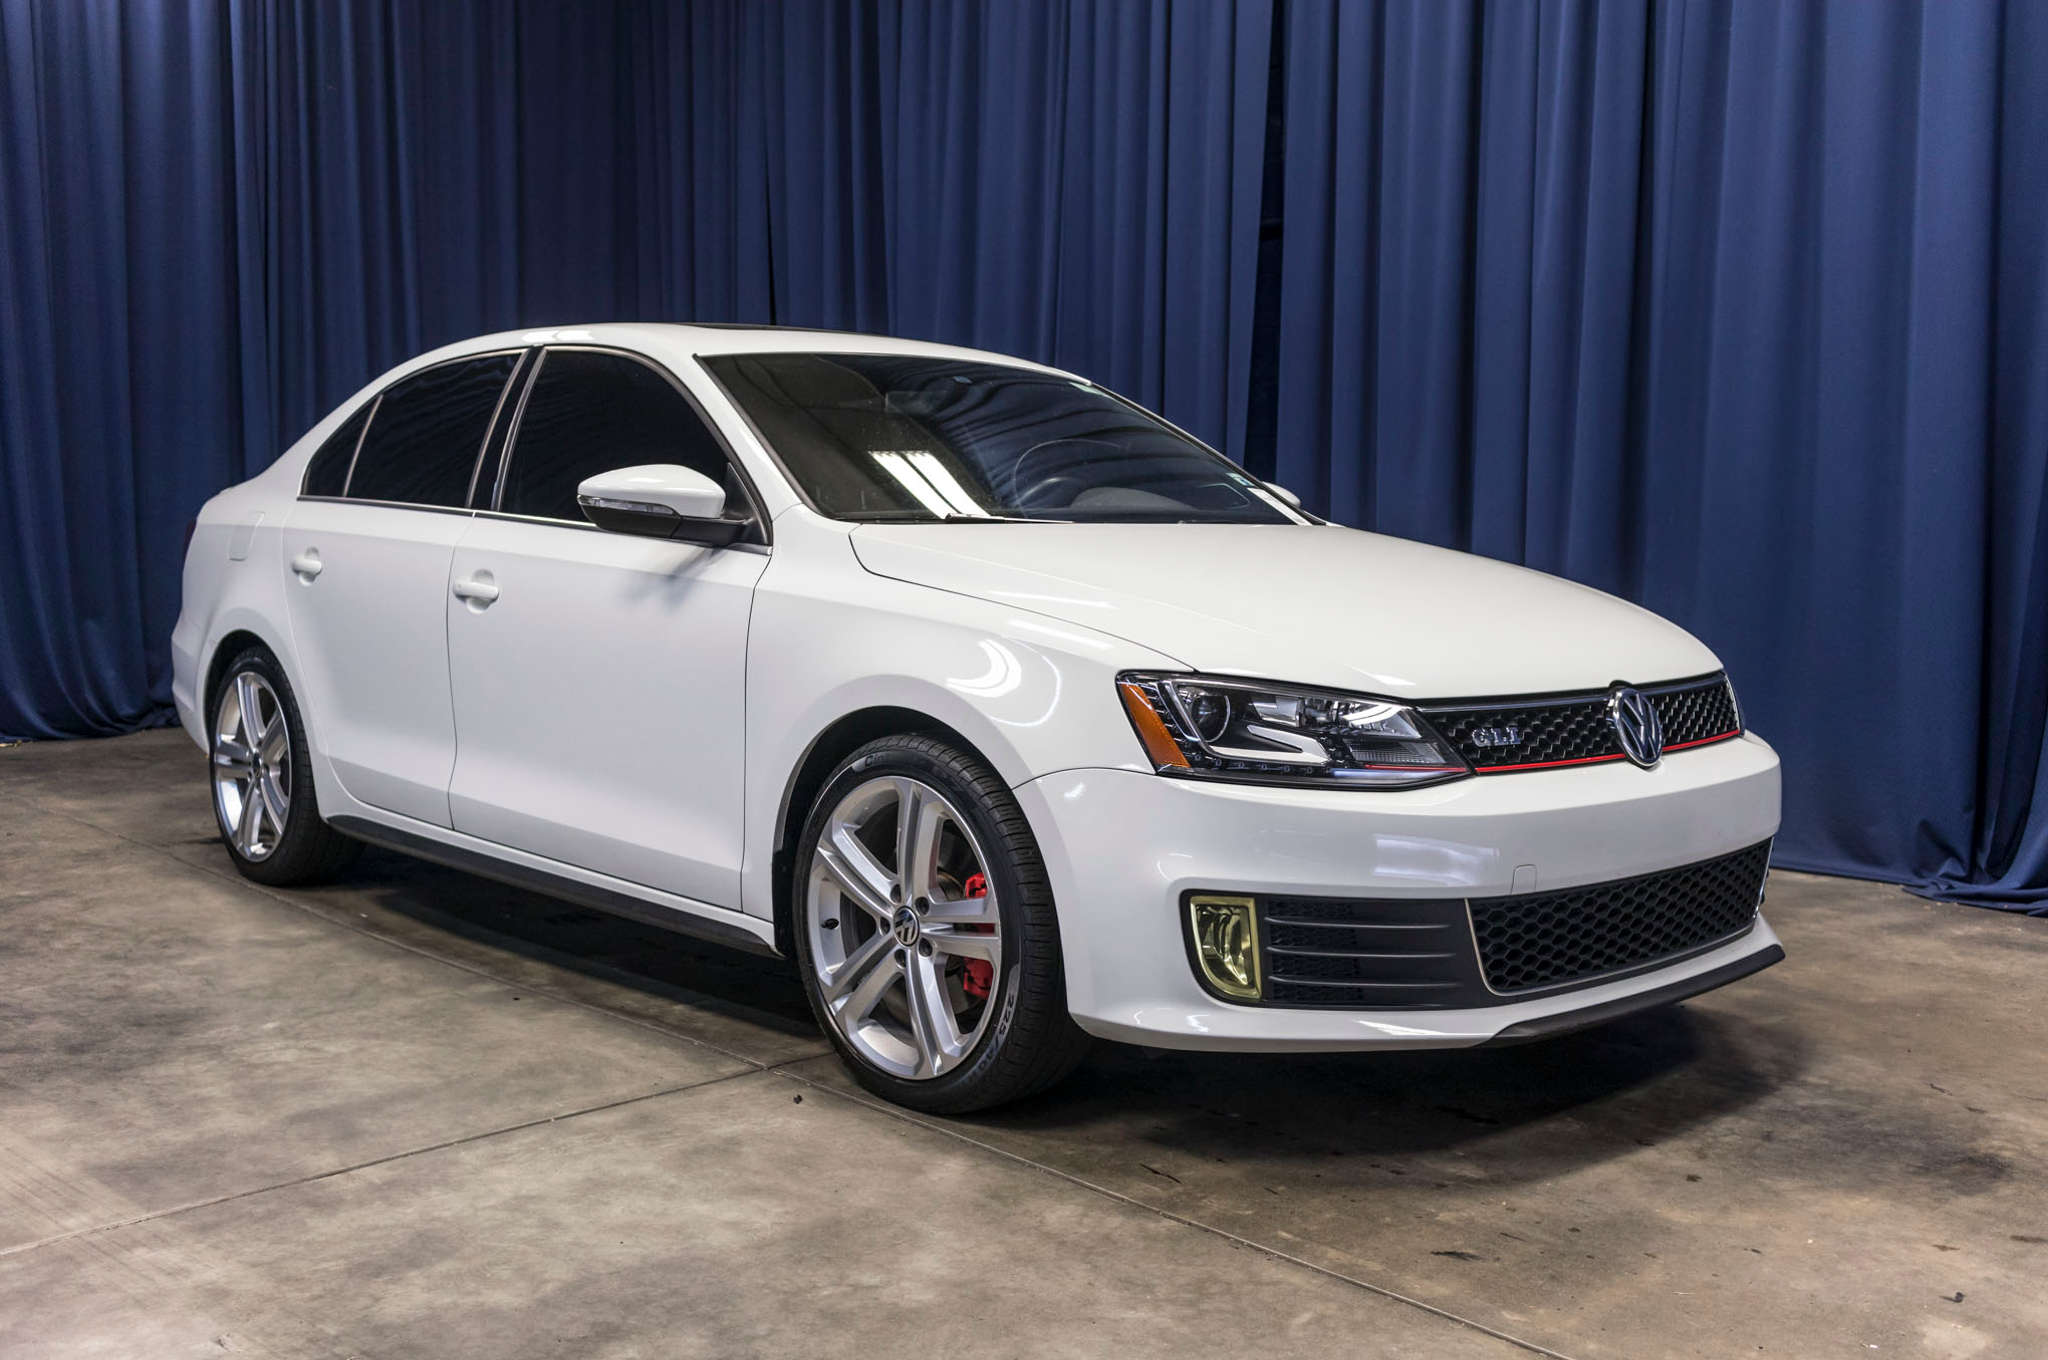 jetta volkswagen gli information buy exterior photo